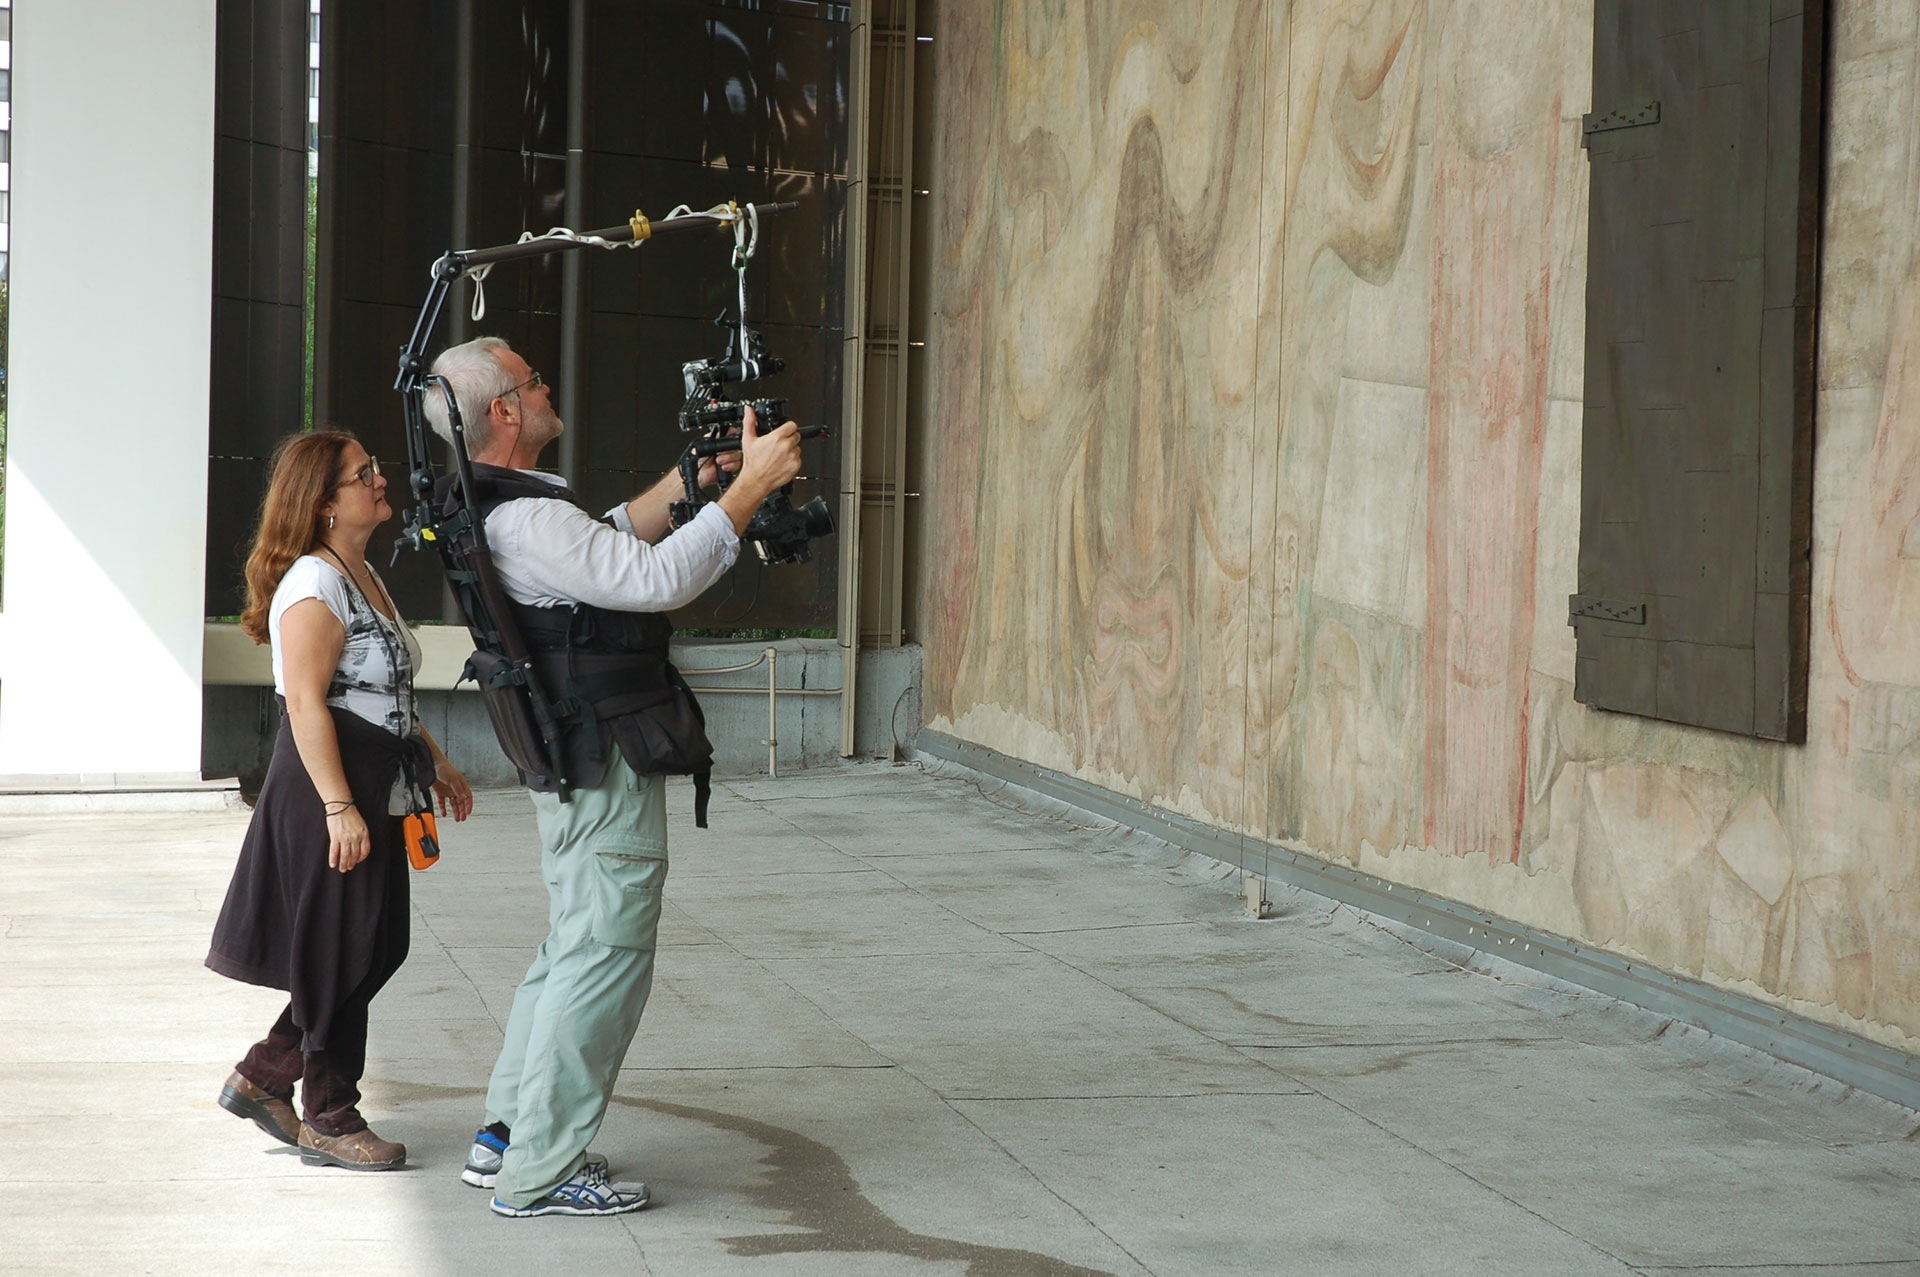 Lorena and Miguel with steadicam in front of Siqueiros mural